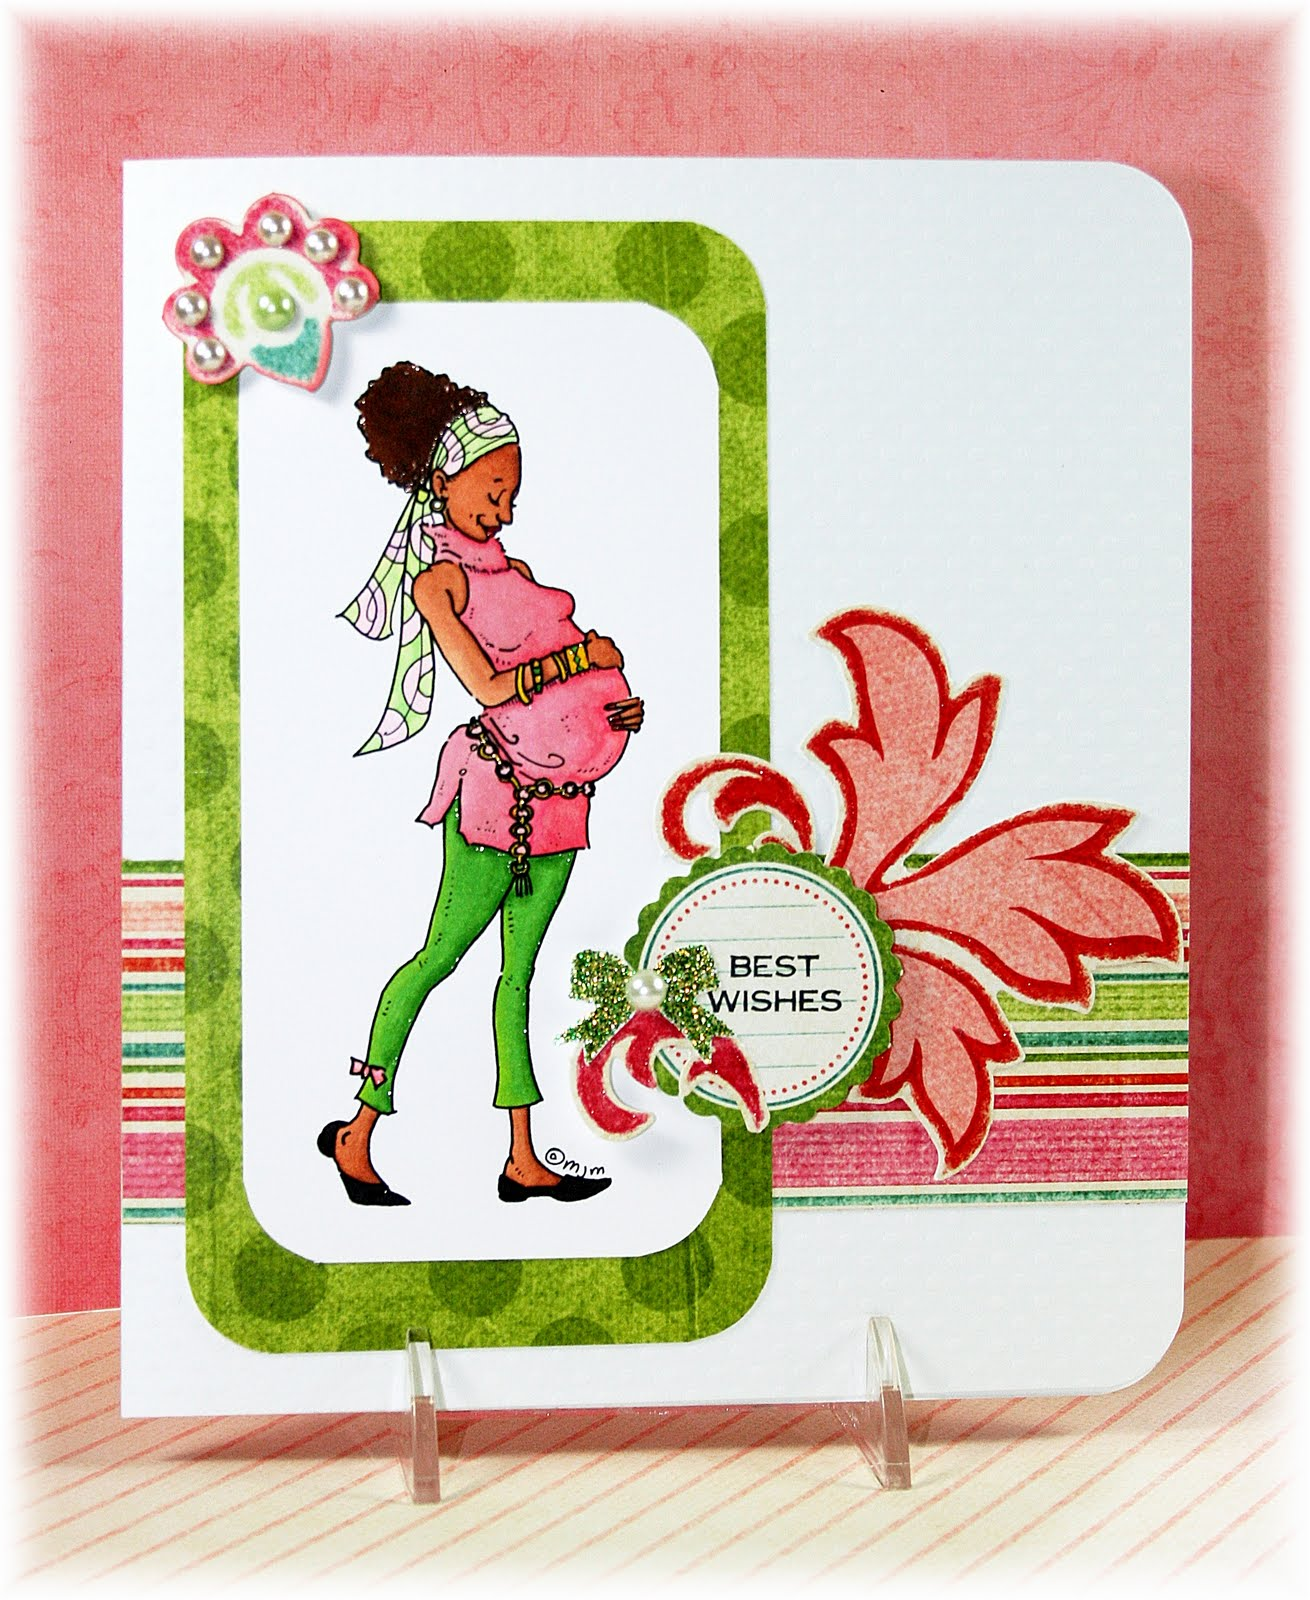 Designs By Robin Best Wishes Baby Shower Card